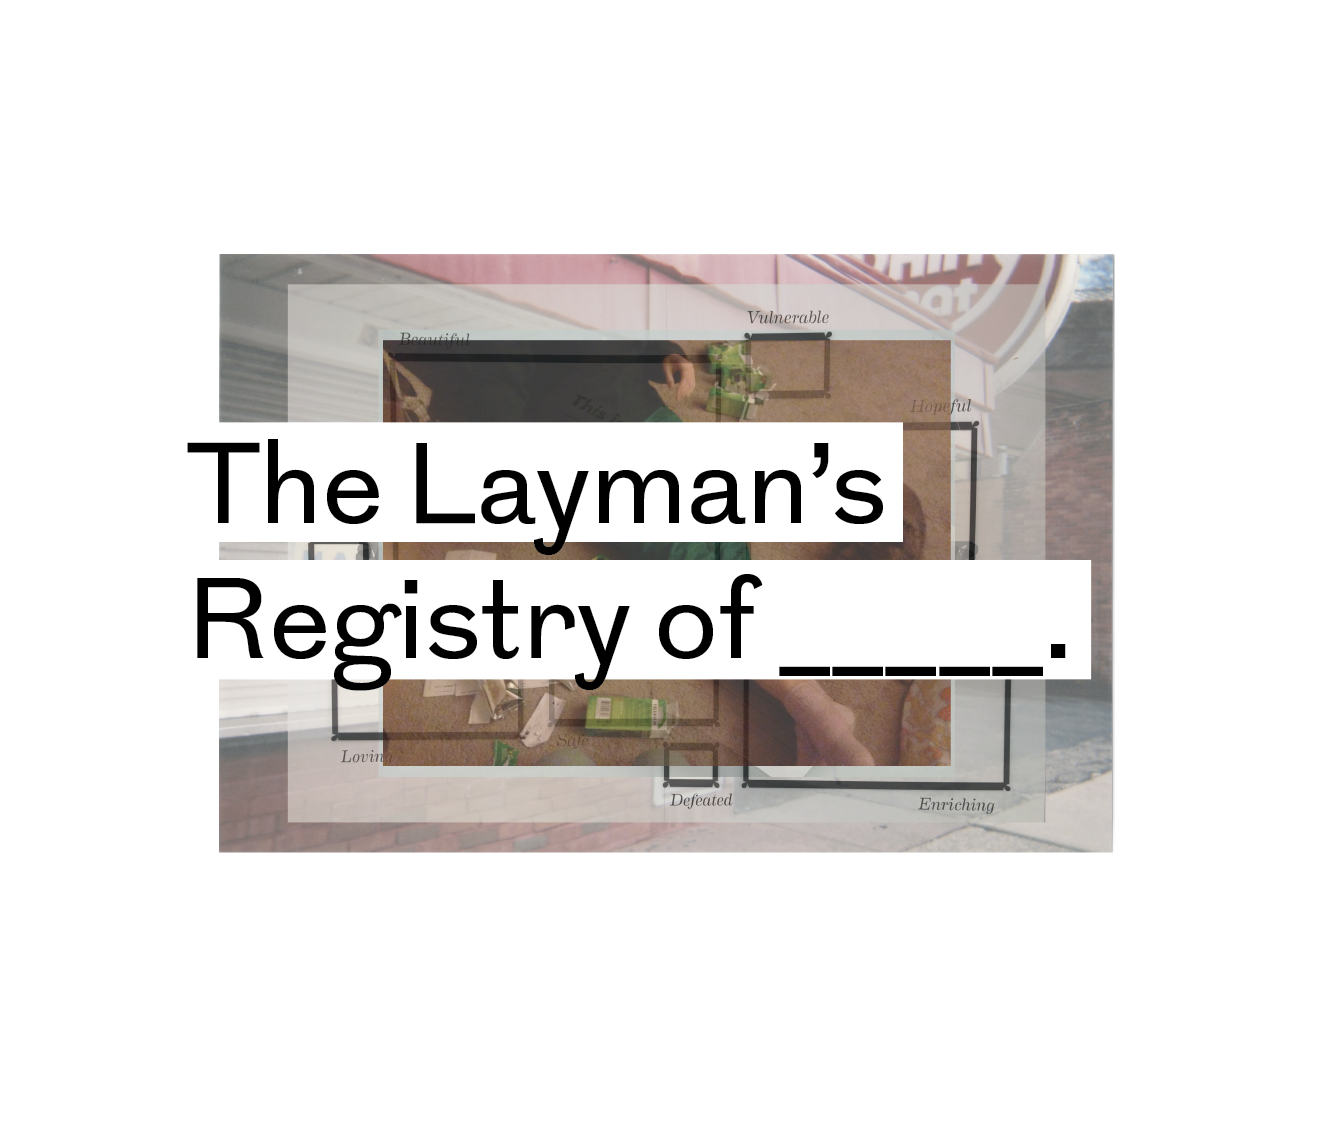 The Layman's Registry of ______.